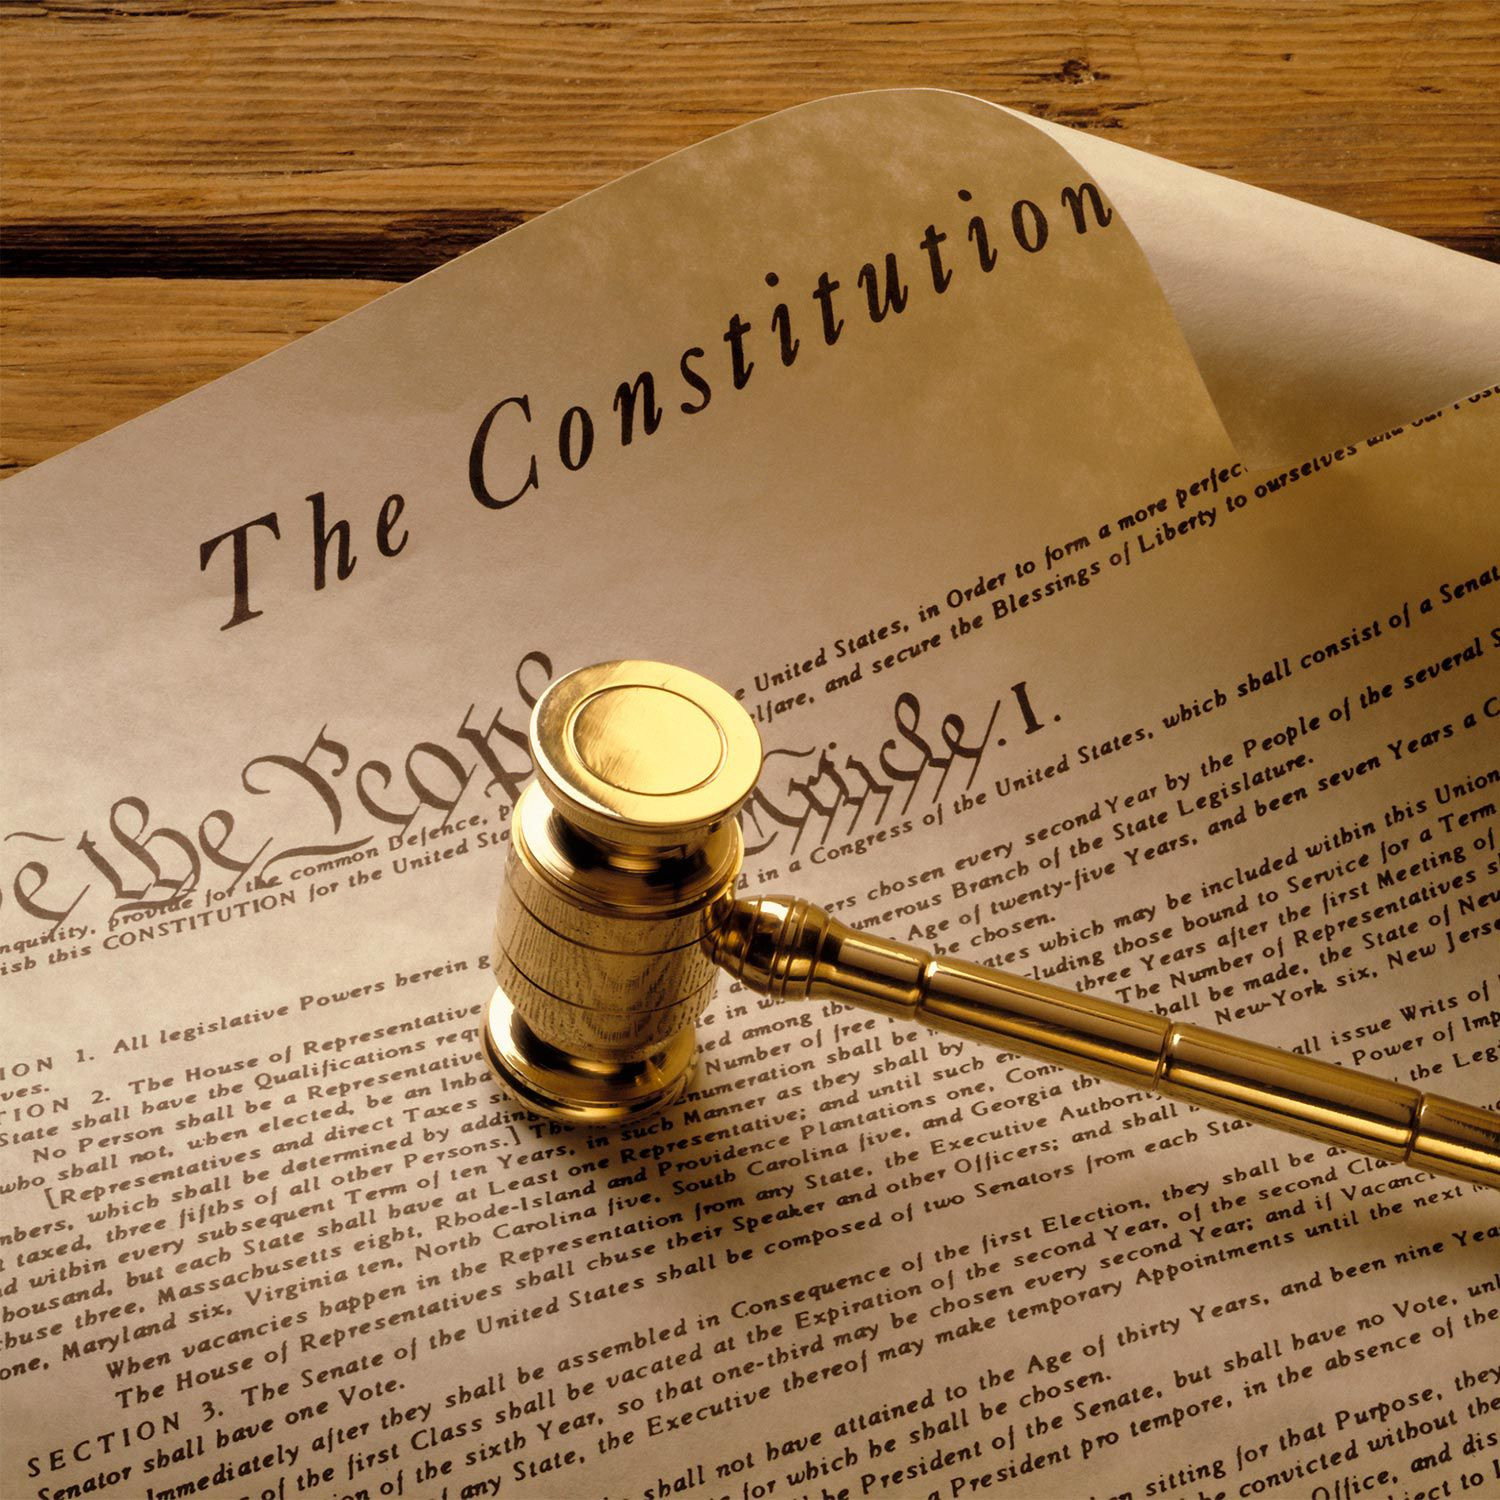 an analysis of constitutional right to privacy Constitutional analysis often contains ambiguity surrounding the word right and other legal concepts the supreme court uses the word equivocally to mean a claim, liberty, power, or immunity the court also invokes amorphous concepts such as right of privacy this article offers an analytical.